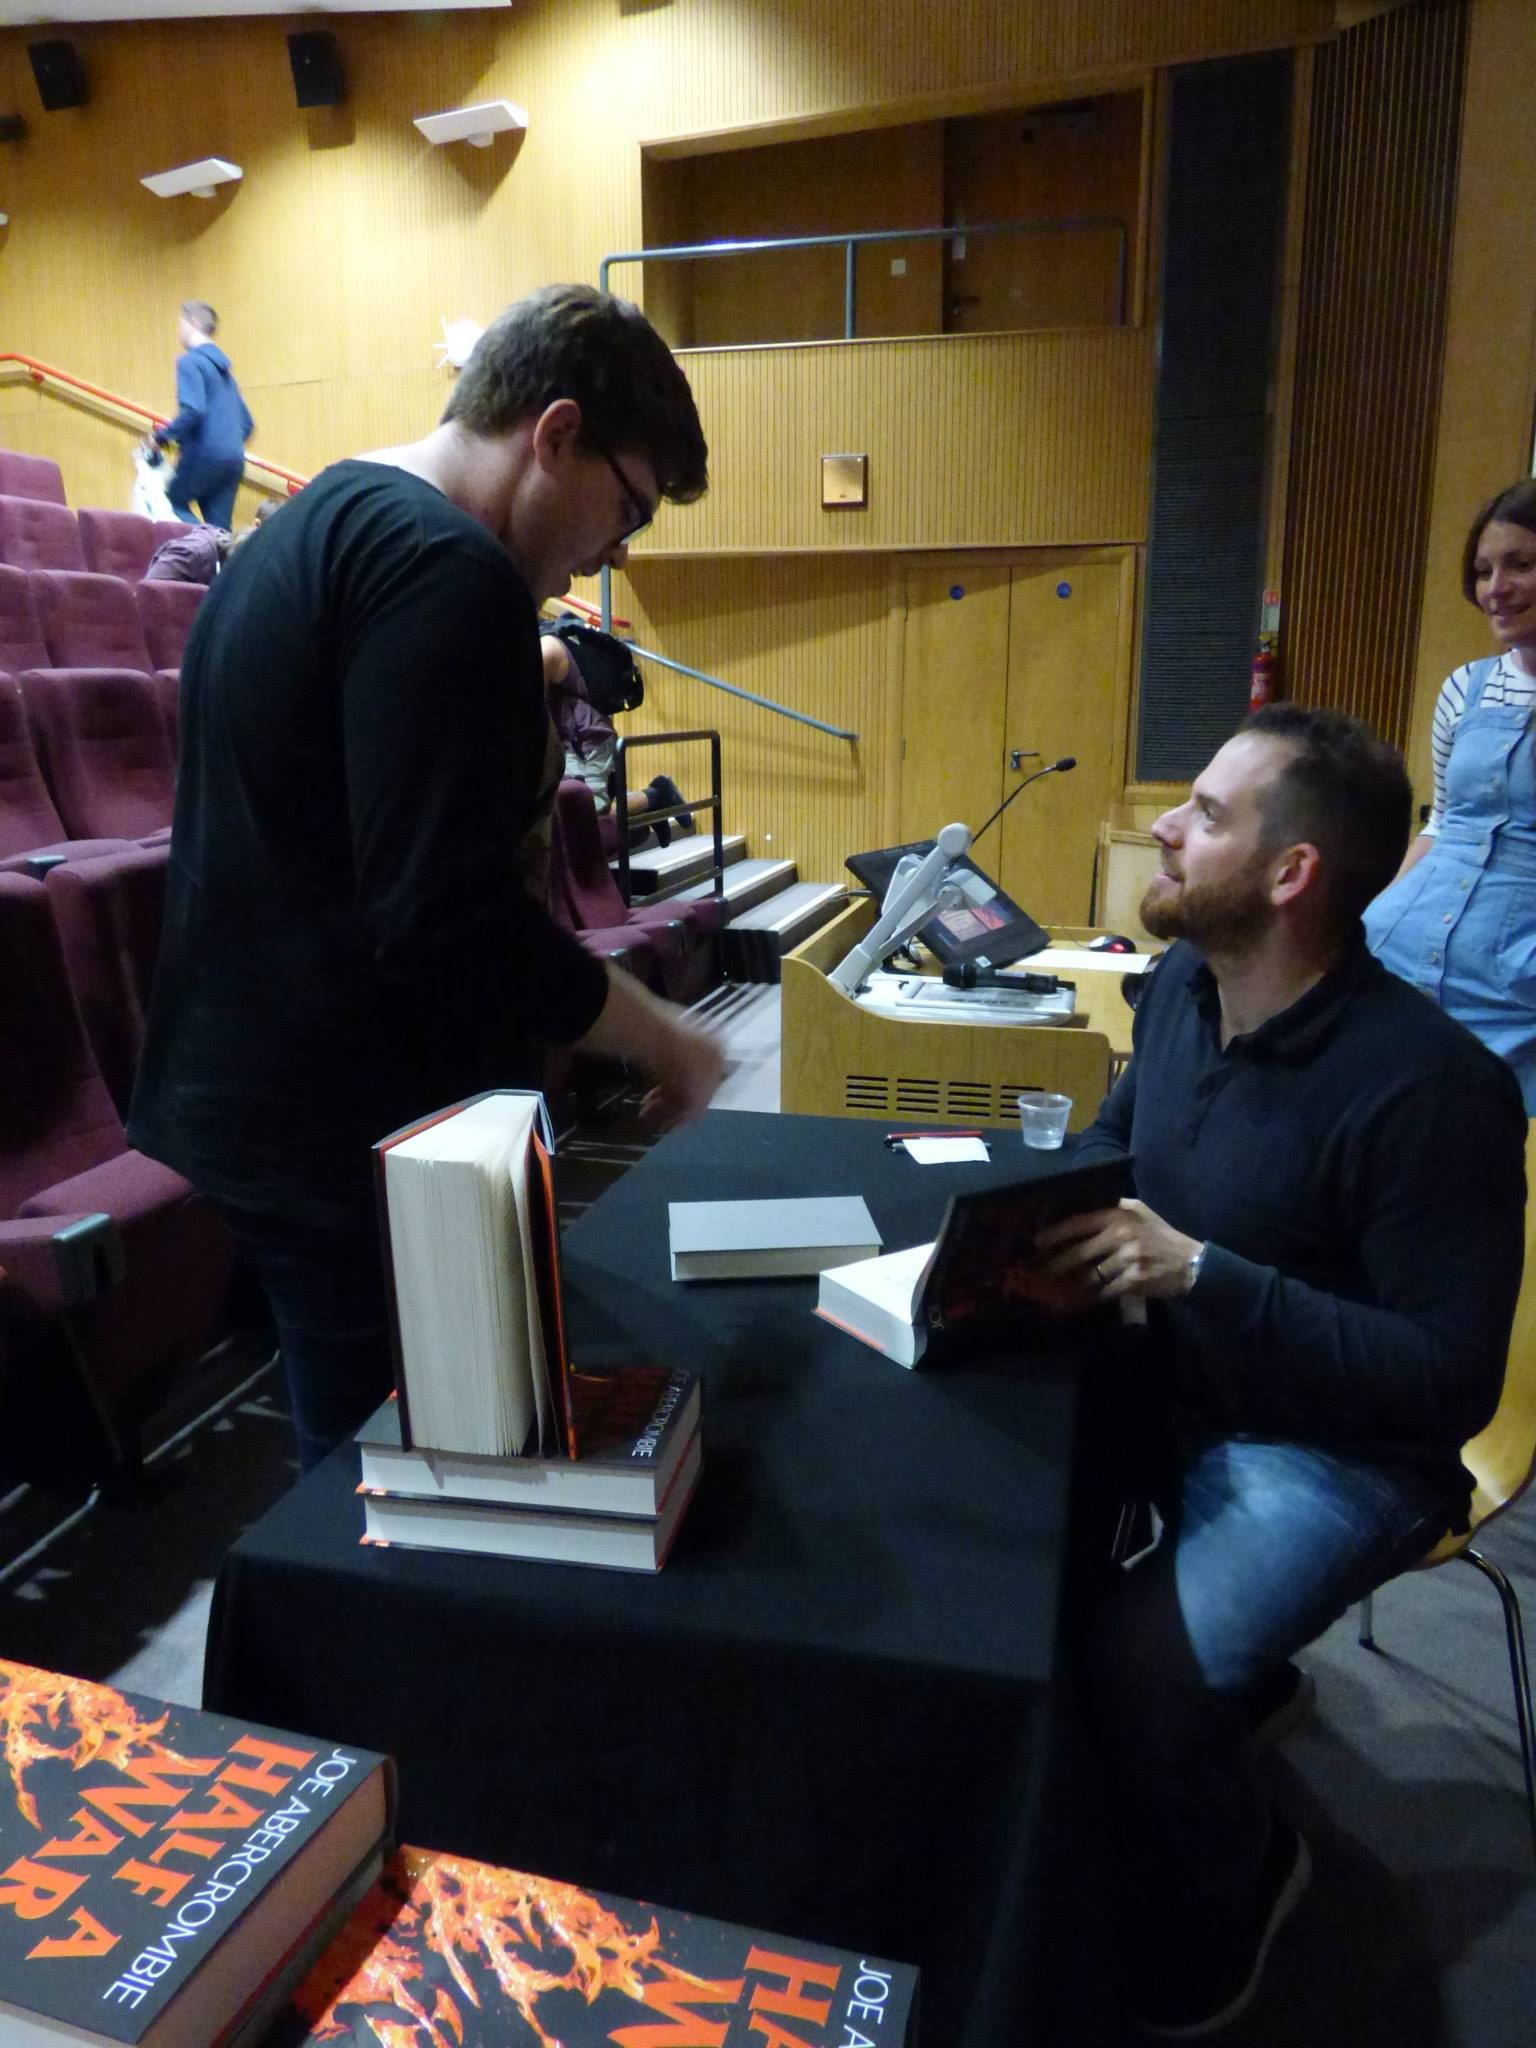 Joe Abercrombie has a chat and signs a copy of Half a War for a customer on July 14th.